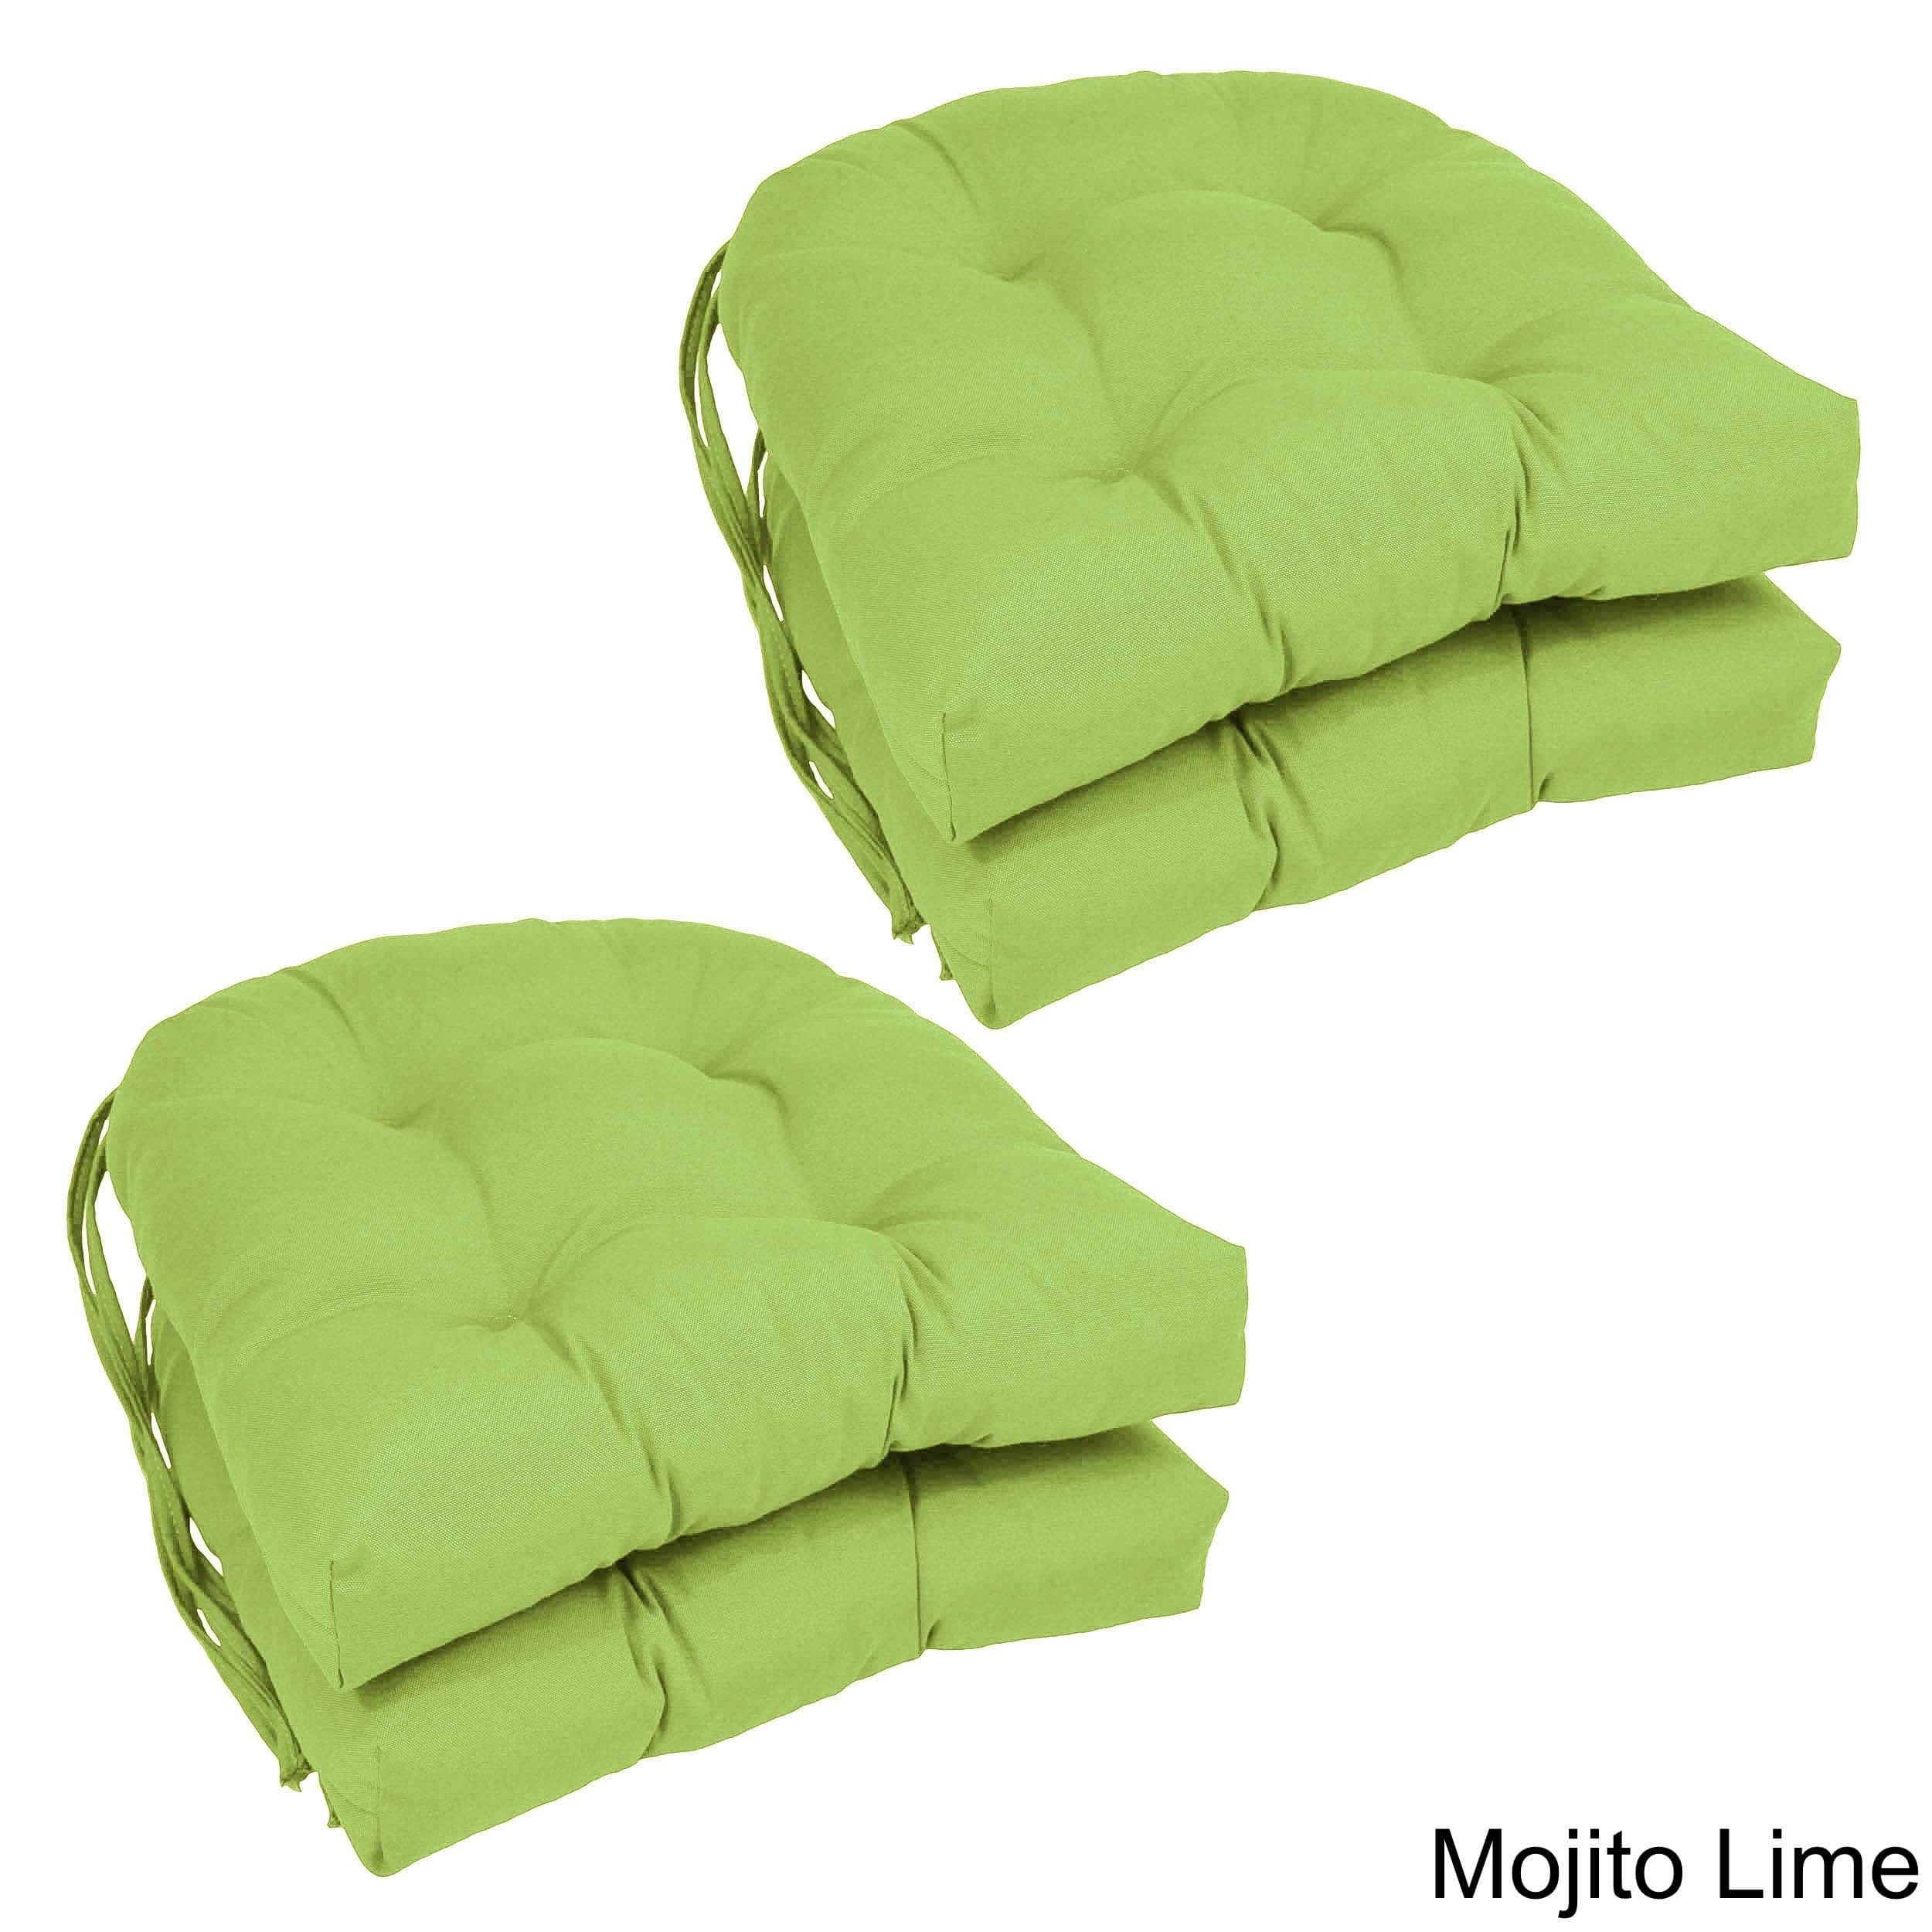 u shaped chair slipcovers baby shower alternatives blazing needles 16 inch dining cushions set of 4 x mojito green lime